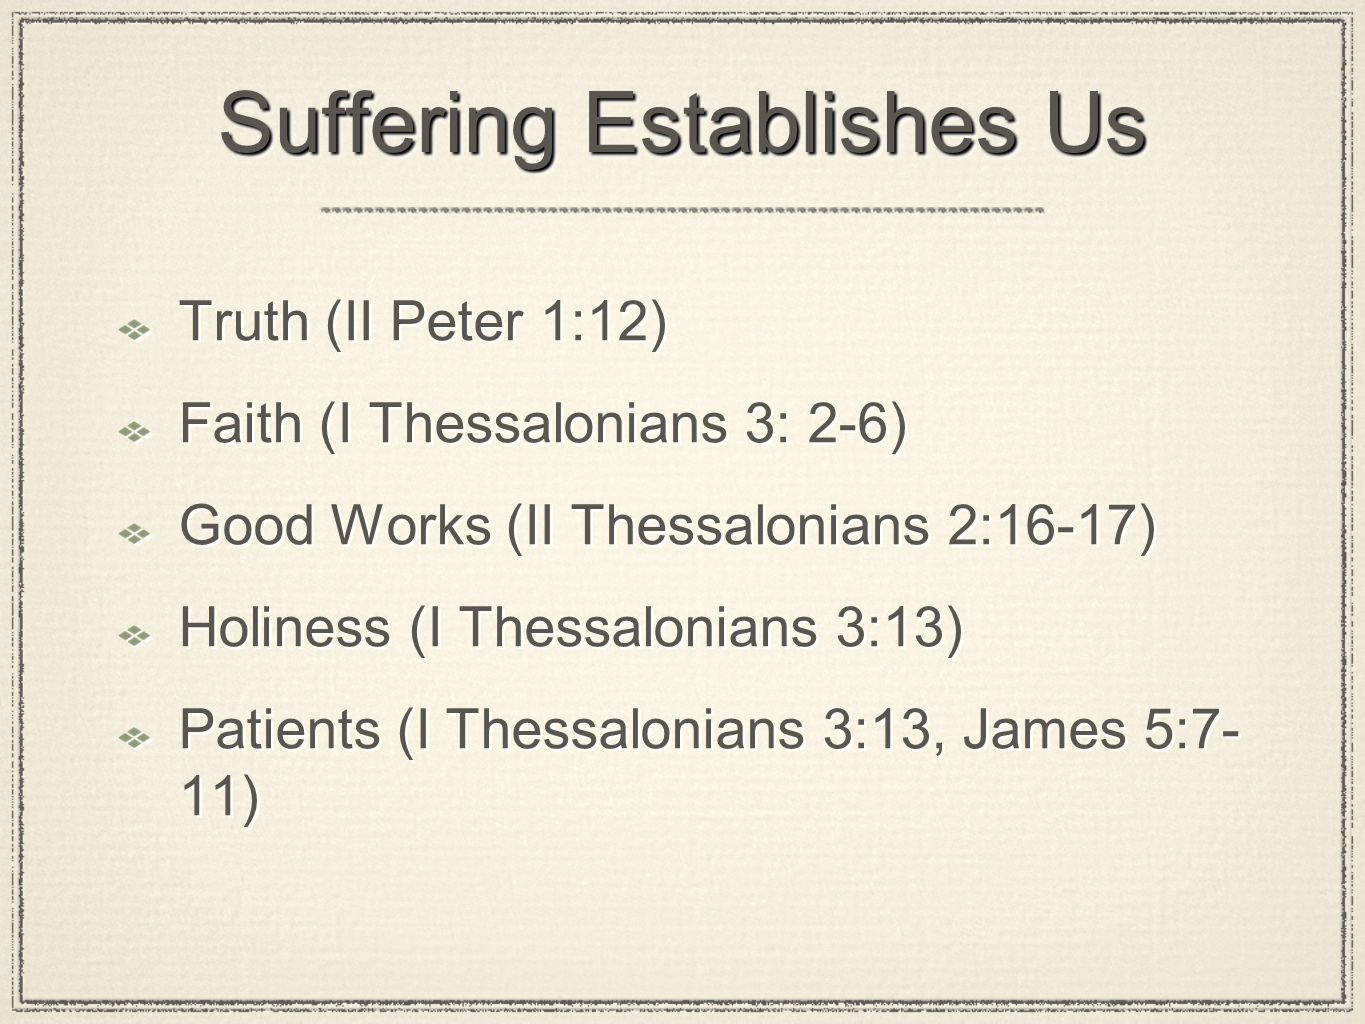 Suffering Establishes Us Truth (II Peter 1:12) Faith (I Thessalonians 3: 2-6) Good Works (II Thessalonians 2:16-17) Holiness (I Thessalonians 3:13) Patients (I Thessalonians 3:13, James 5:7- 11) Truth (II Peter 1:12) Faith (I Thessalonians 3: 2-6) Good Works (II Thessalonians 2:16-17) Holiness (I Thessalonians 3:13) Patients (I Thessalonians 3:13, James 5:7- 11)